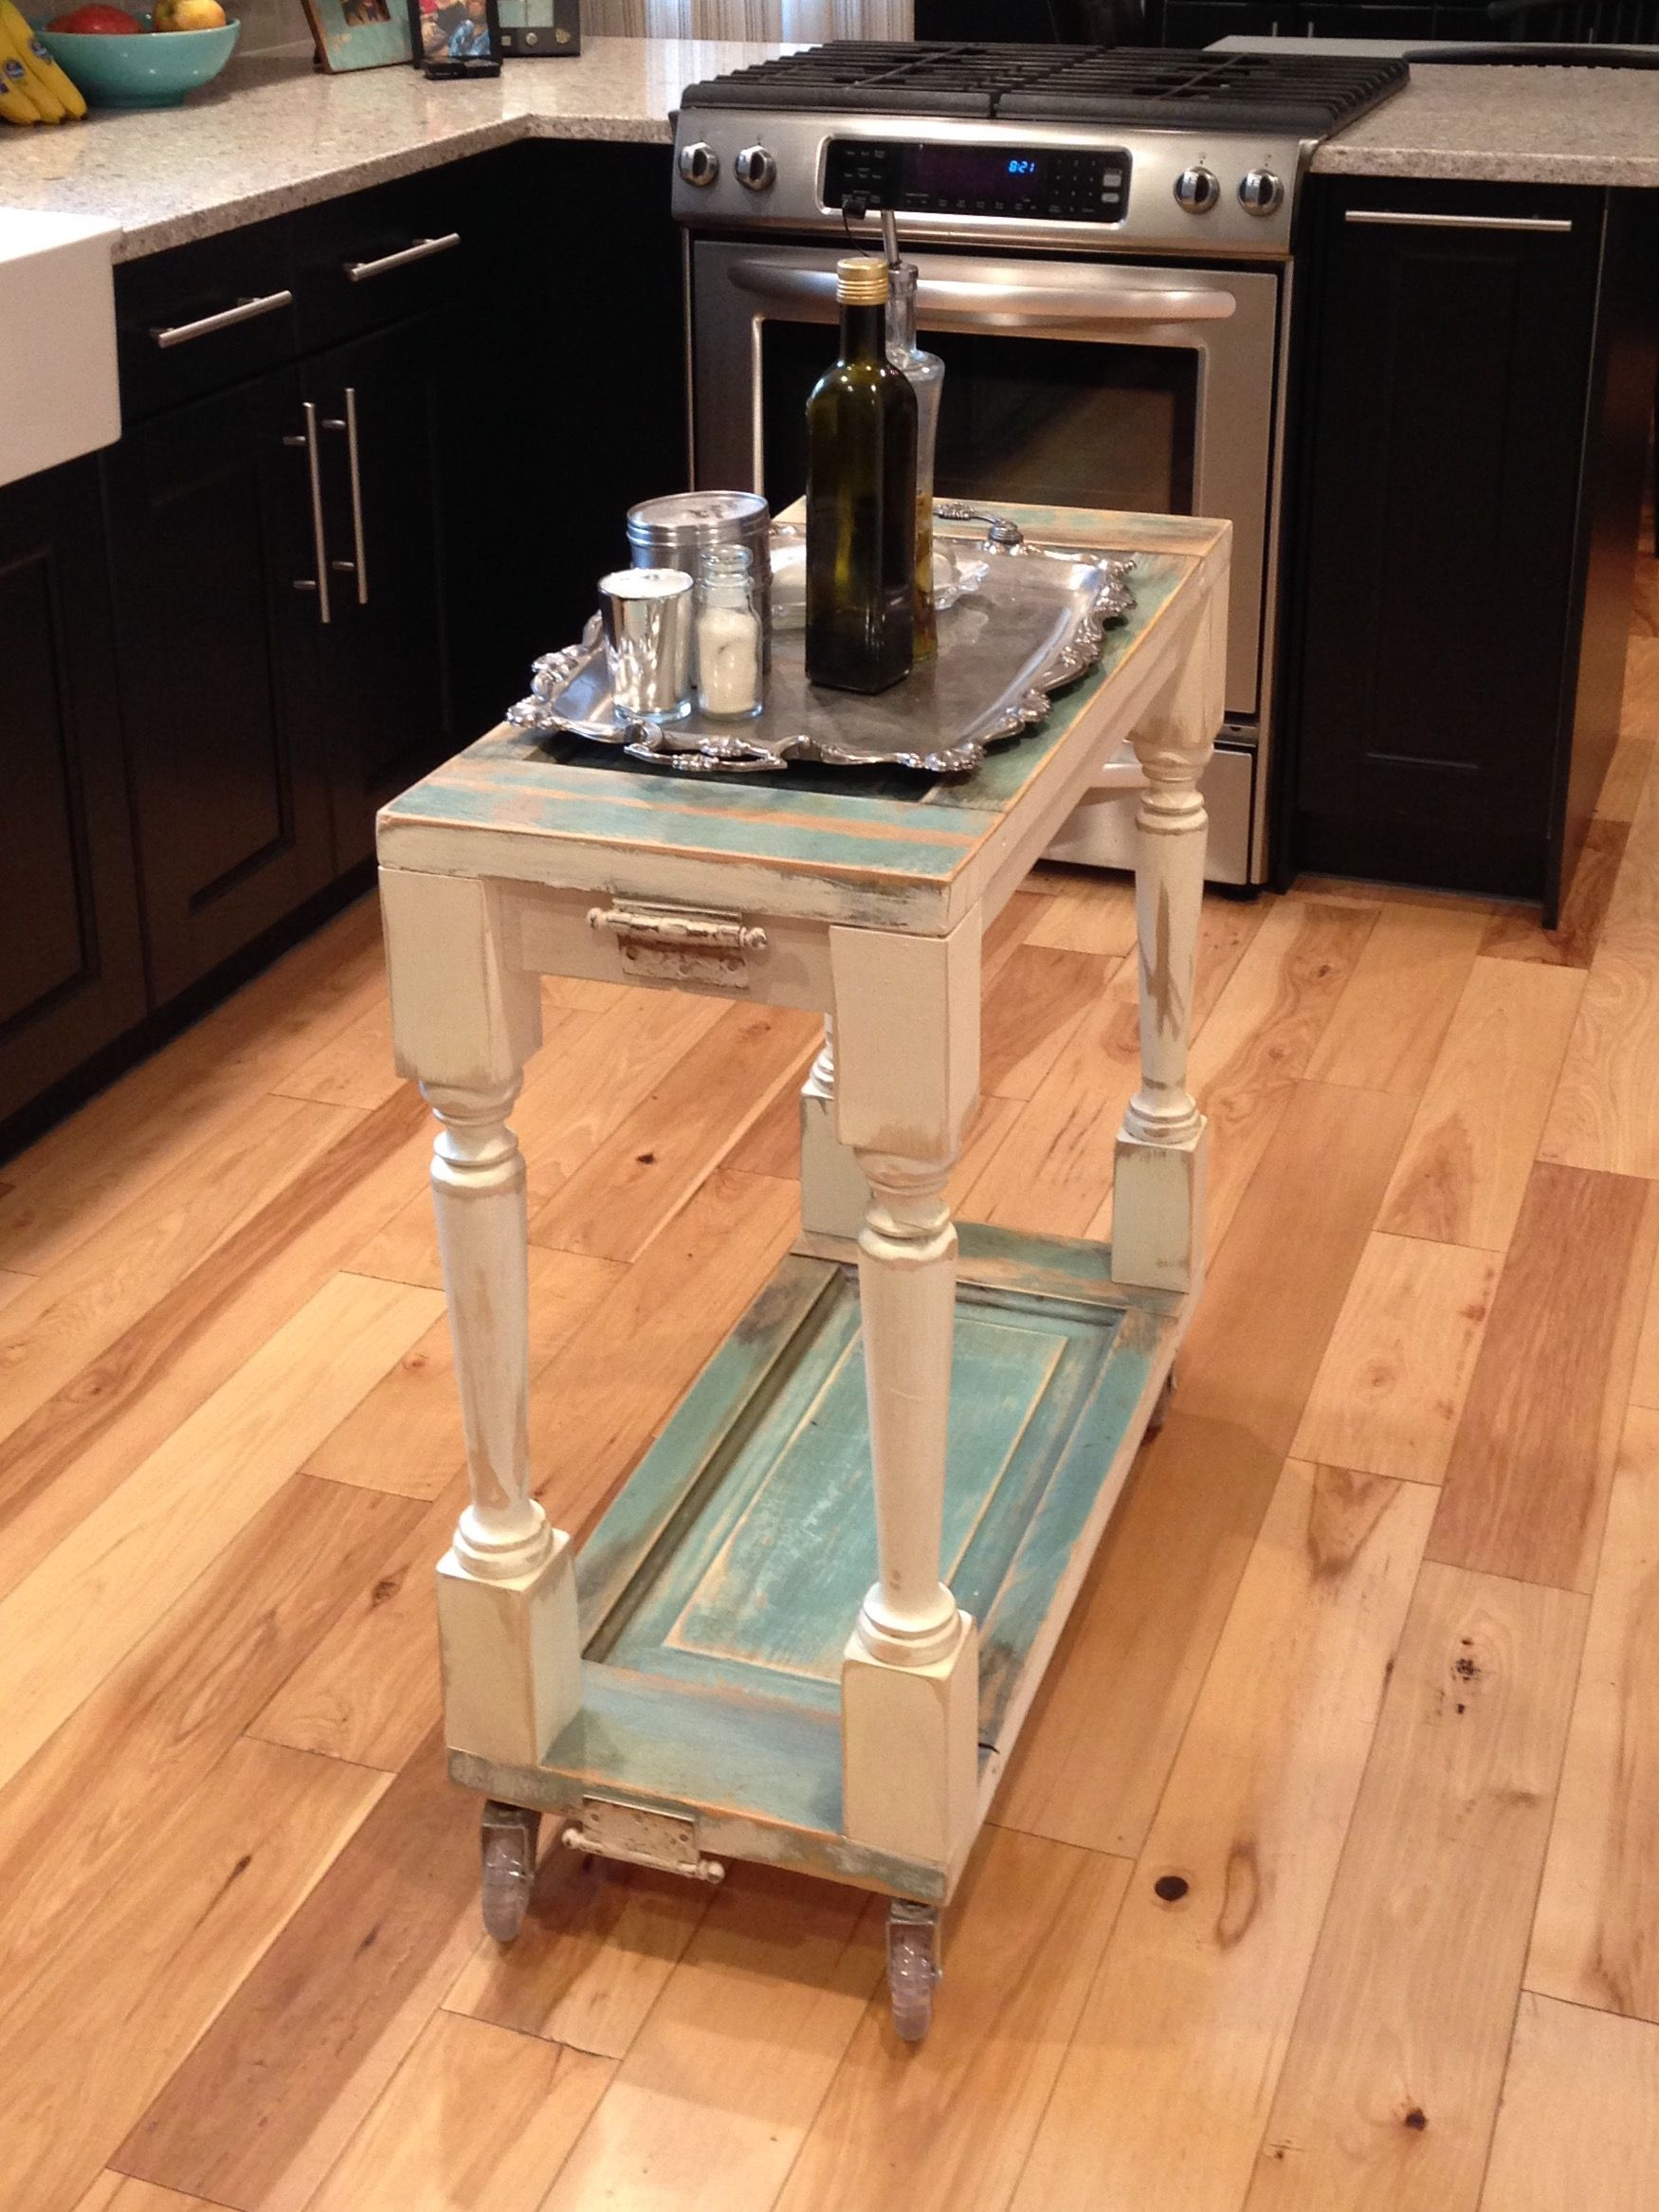 Fun and functional kitchen island made by junk chic island is